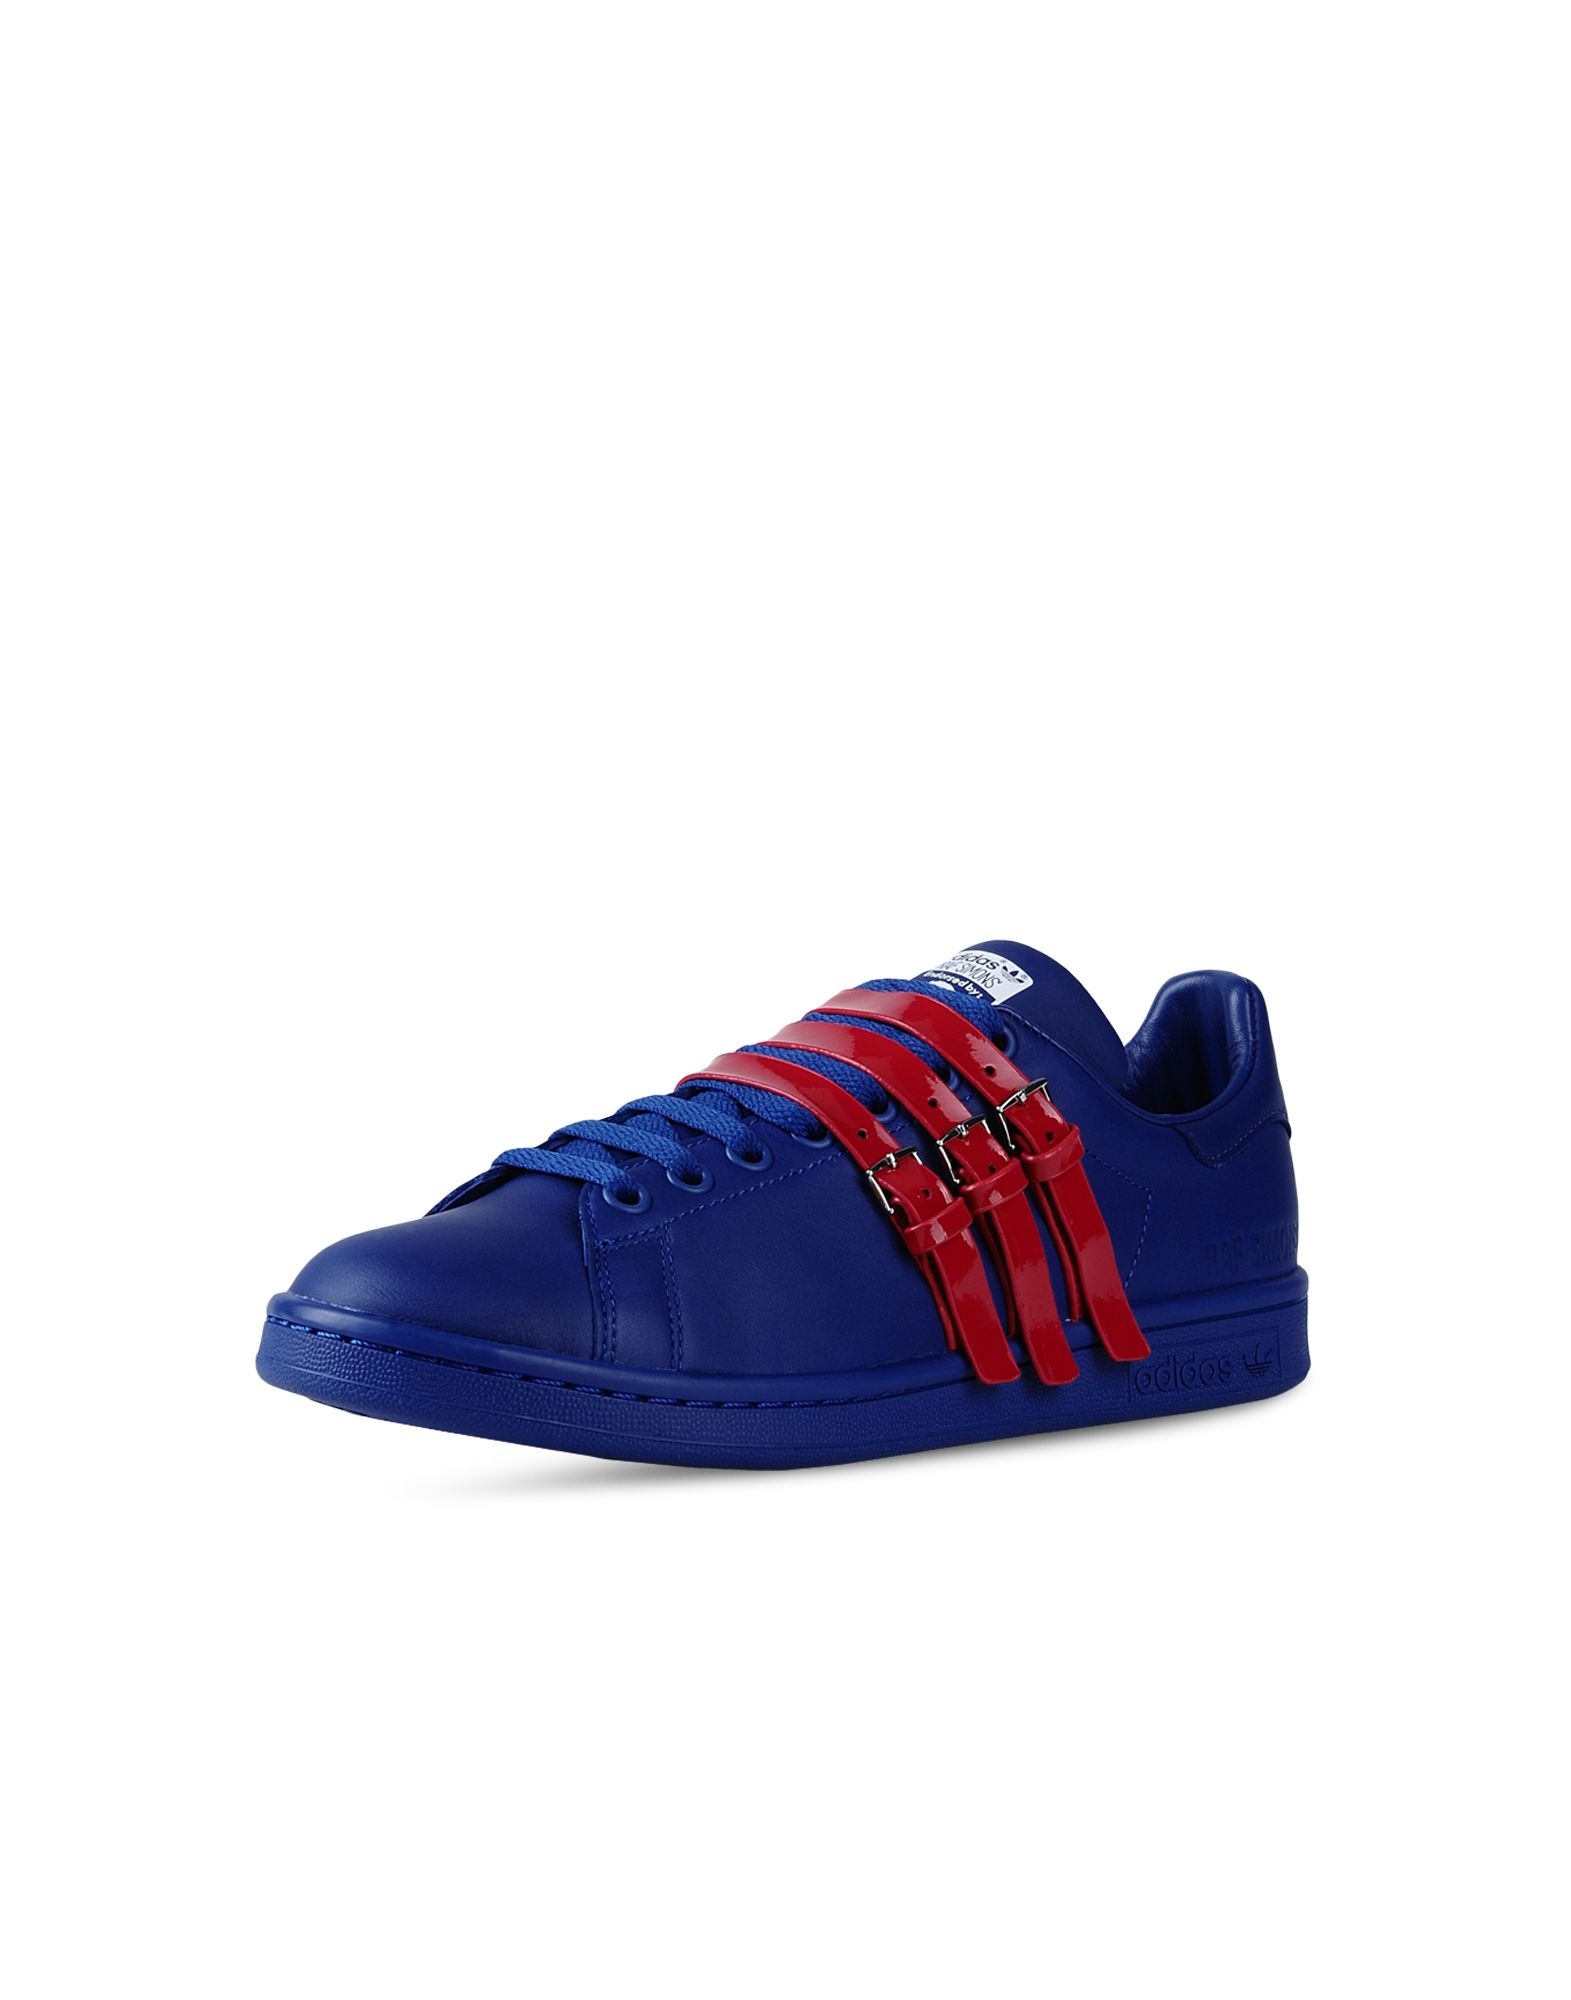 stan smith adidas velcro blue nz